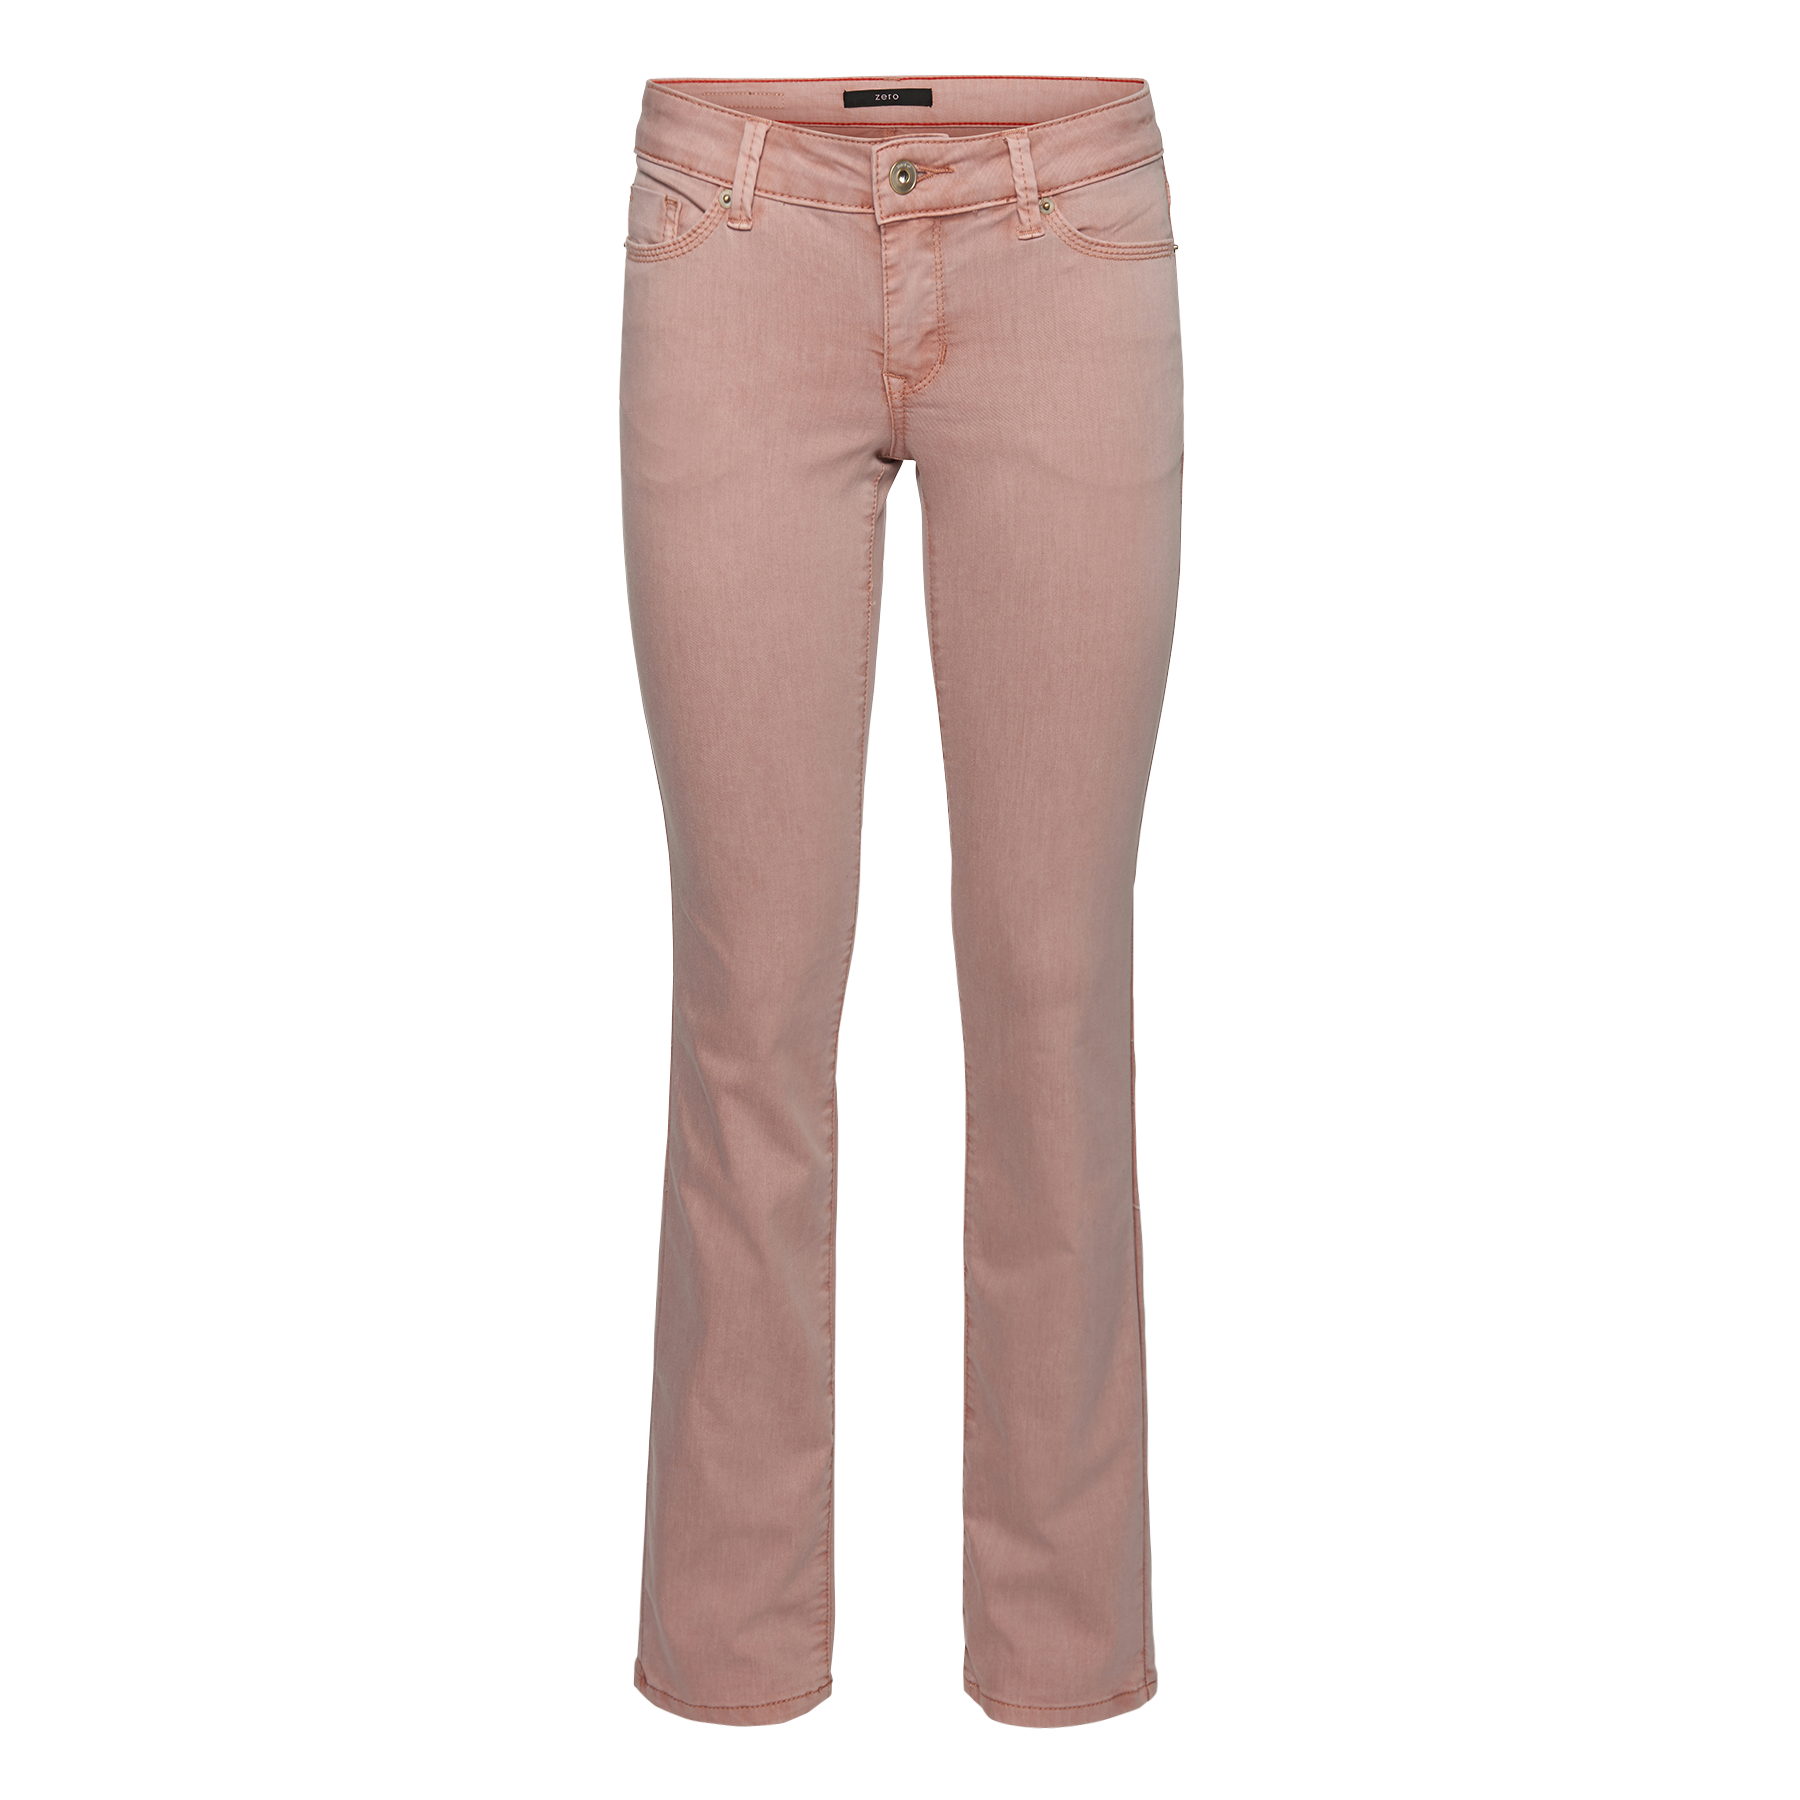 Slim Fit Jeans Seattle, 32 inch rose parfait